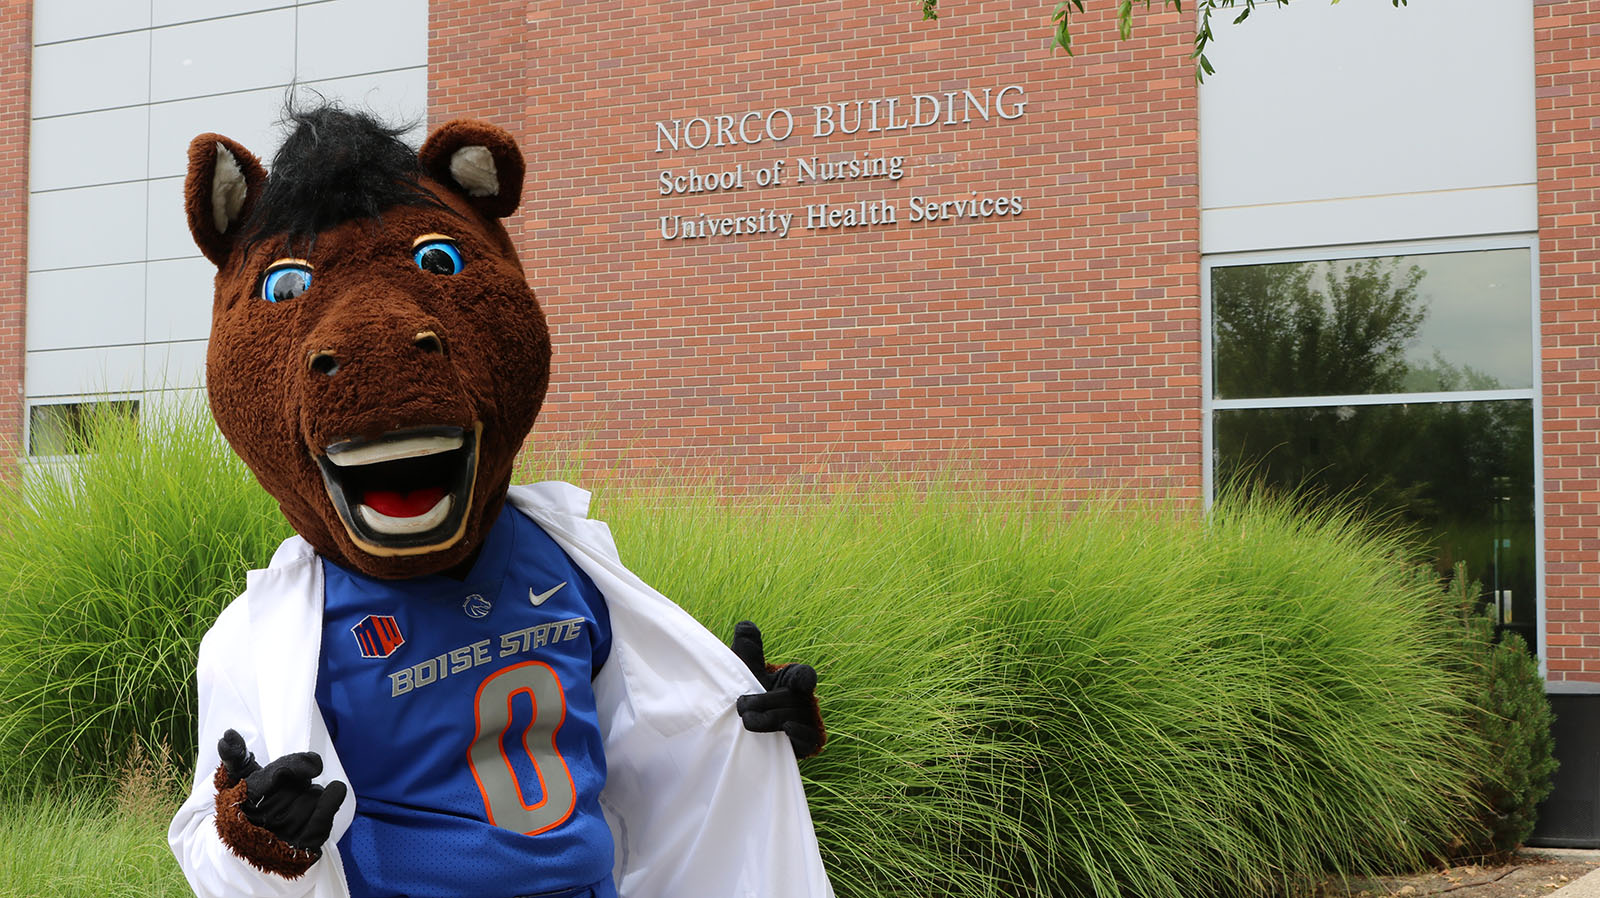 Buster Bronco in front of the Norco Building